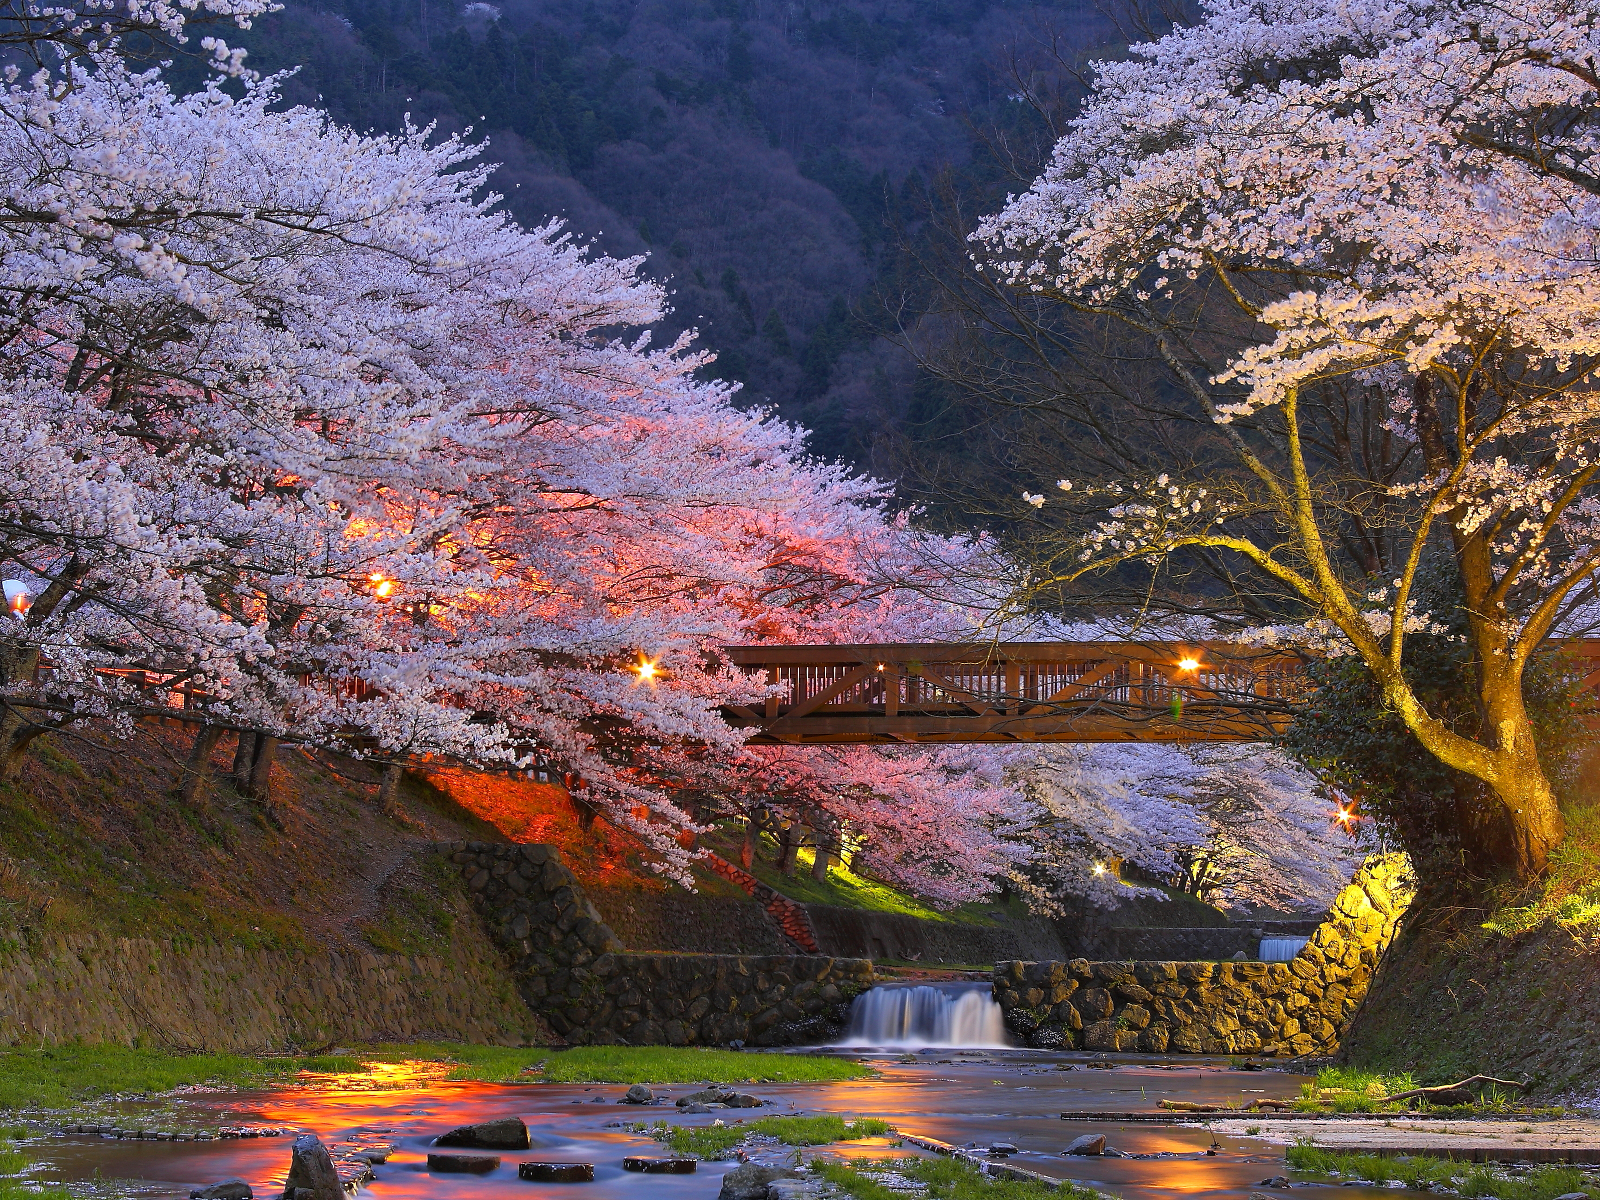 cherry-blossoms-sakura-tree-cat-trees-near-kyoto-japan-pics-3404512